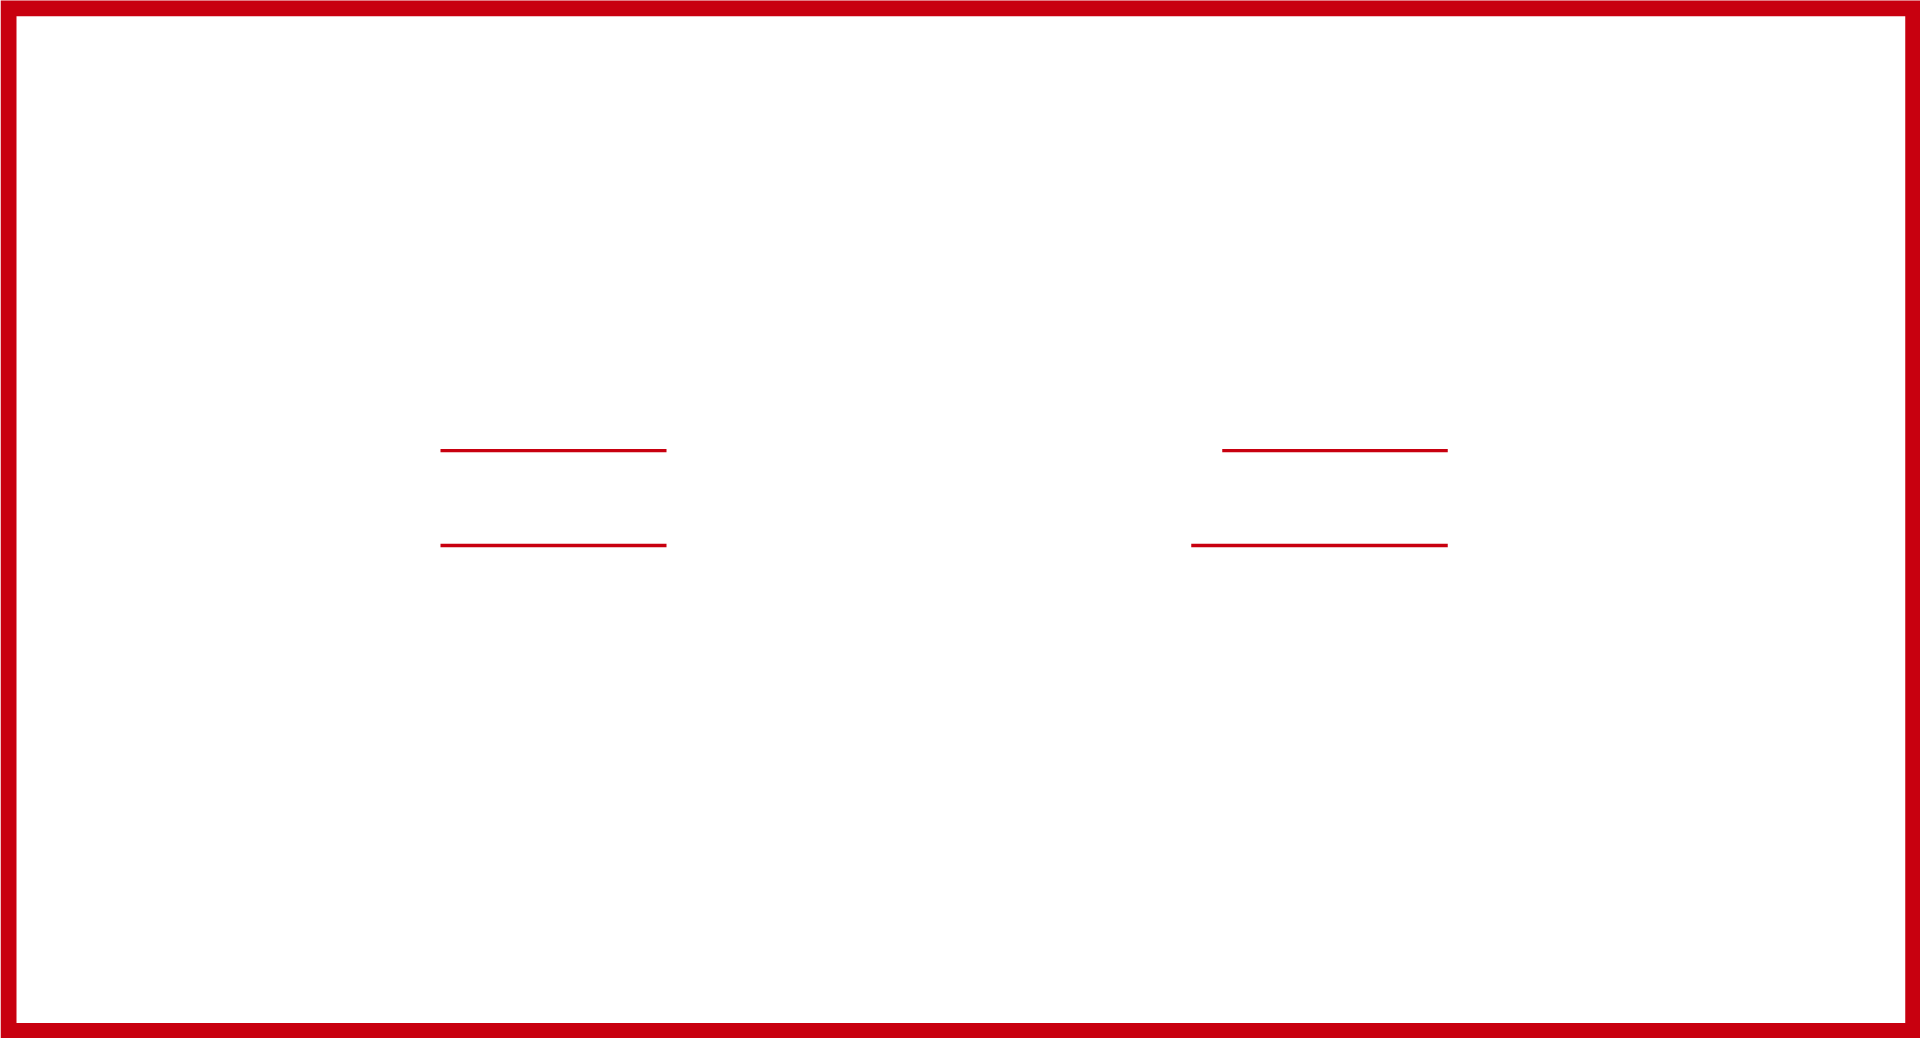 Outside Event Caterers